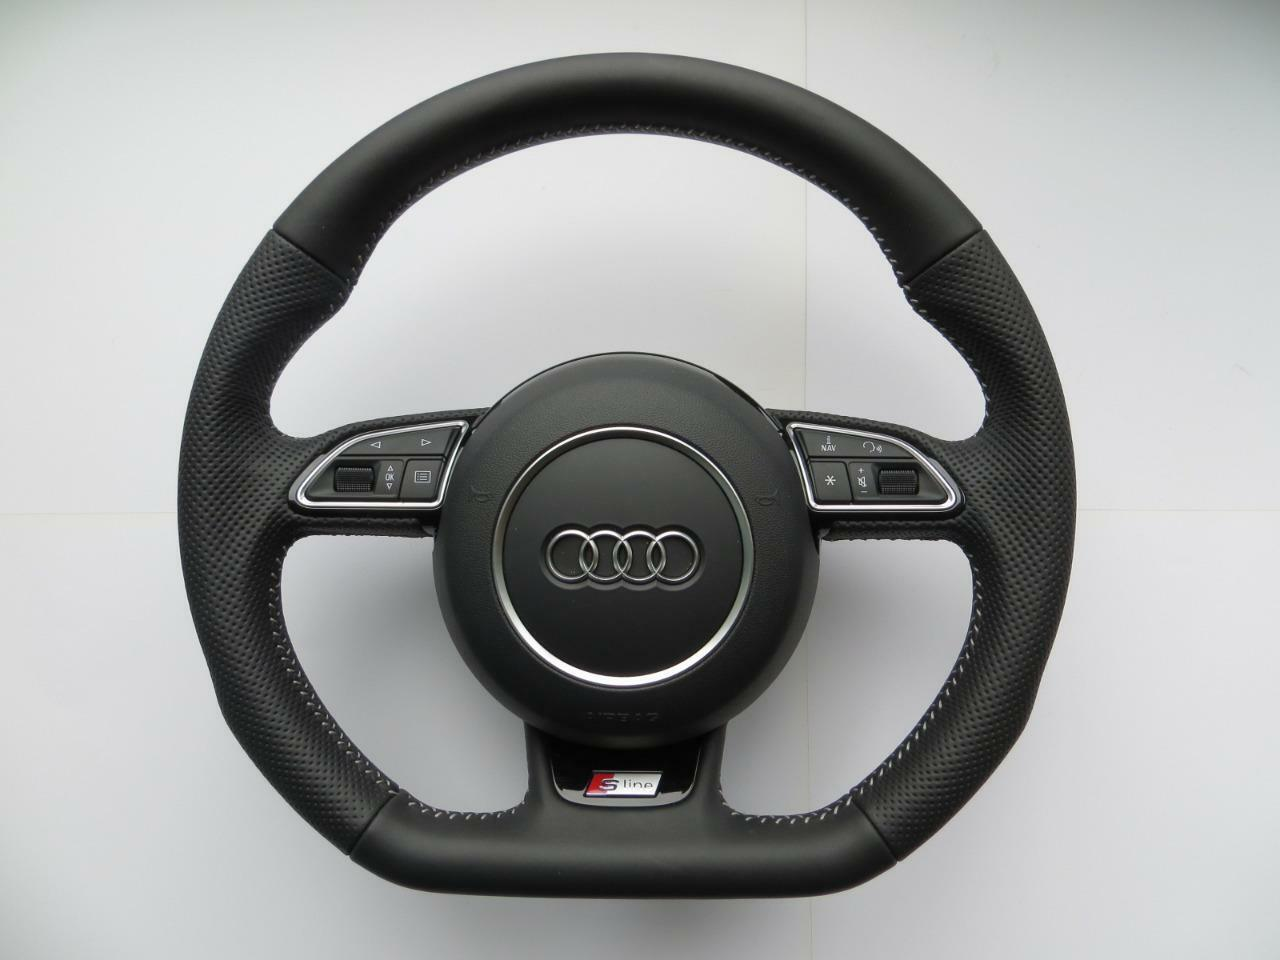 audi s line steering wheel with airbag a3 s3 rs3 q3 a1. Black Bedroom Furniture Sets. Home Design Ideas